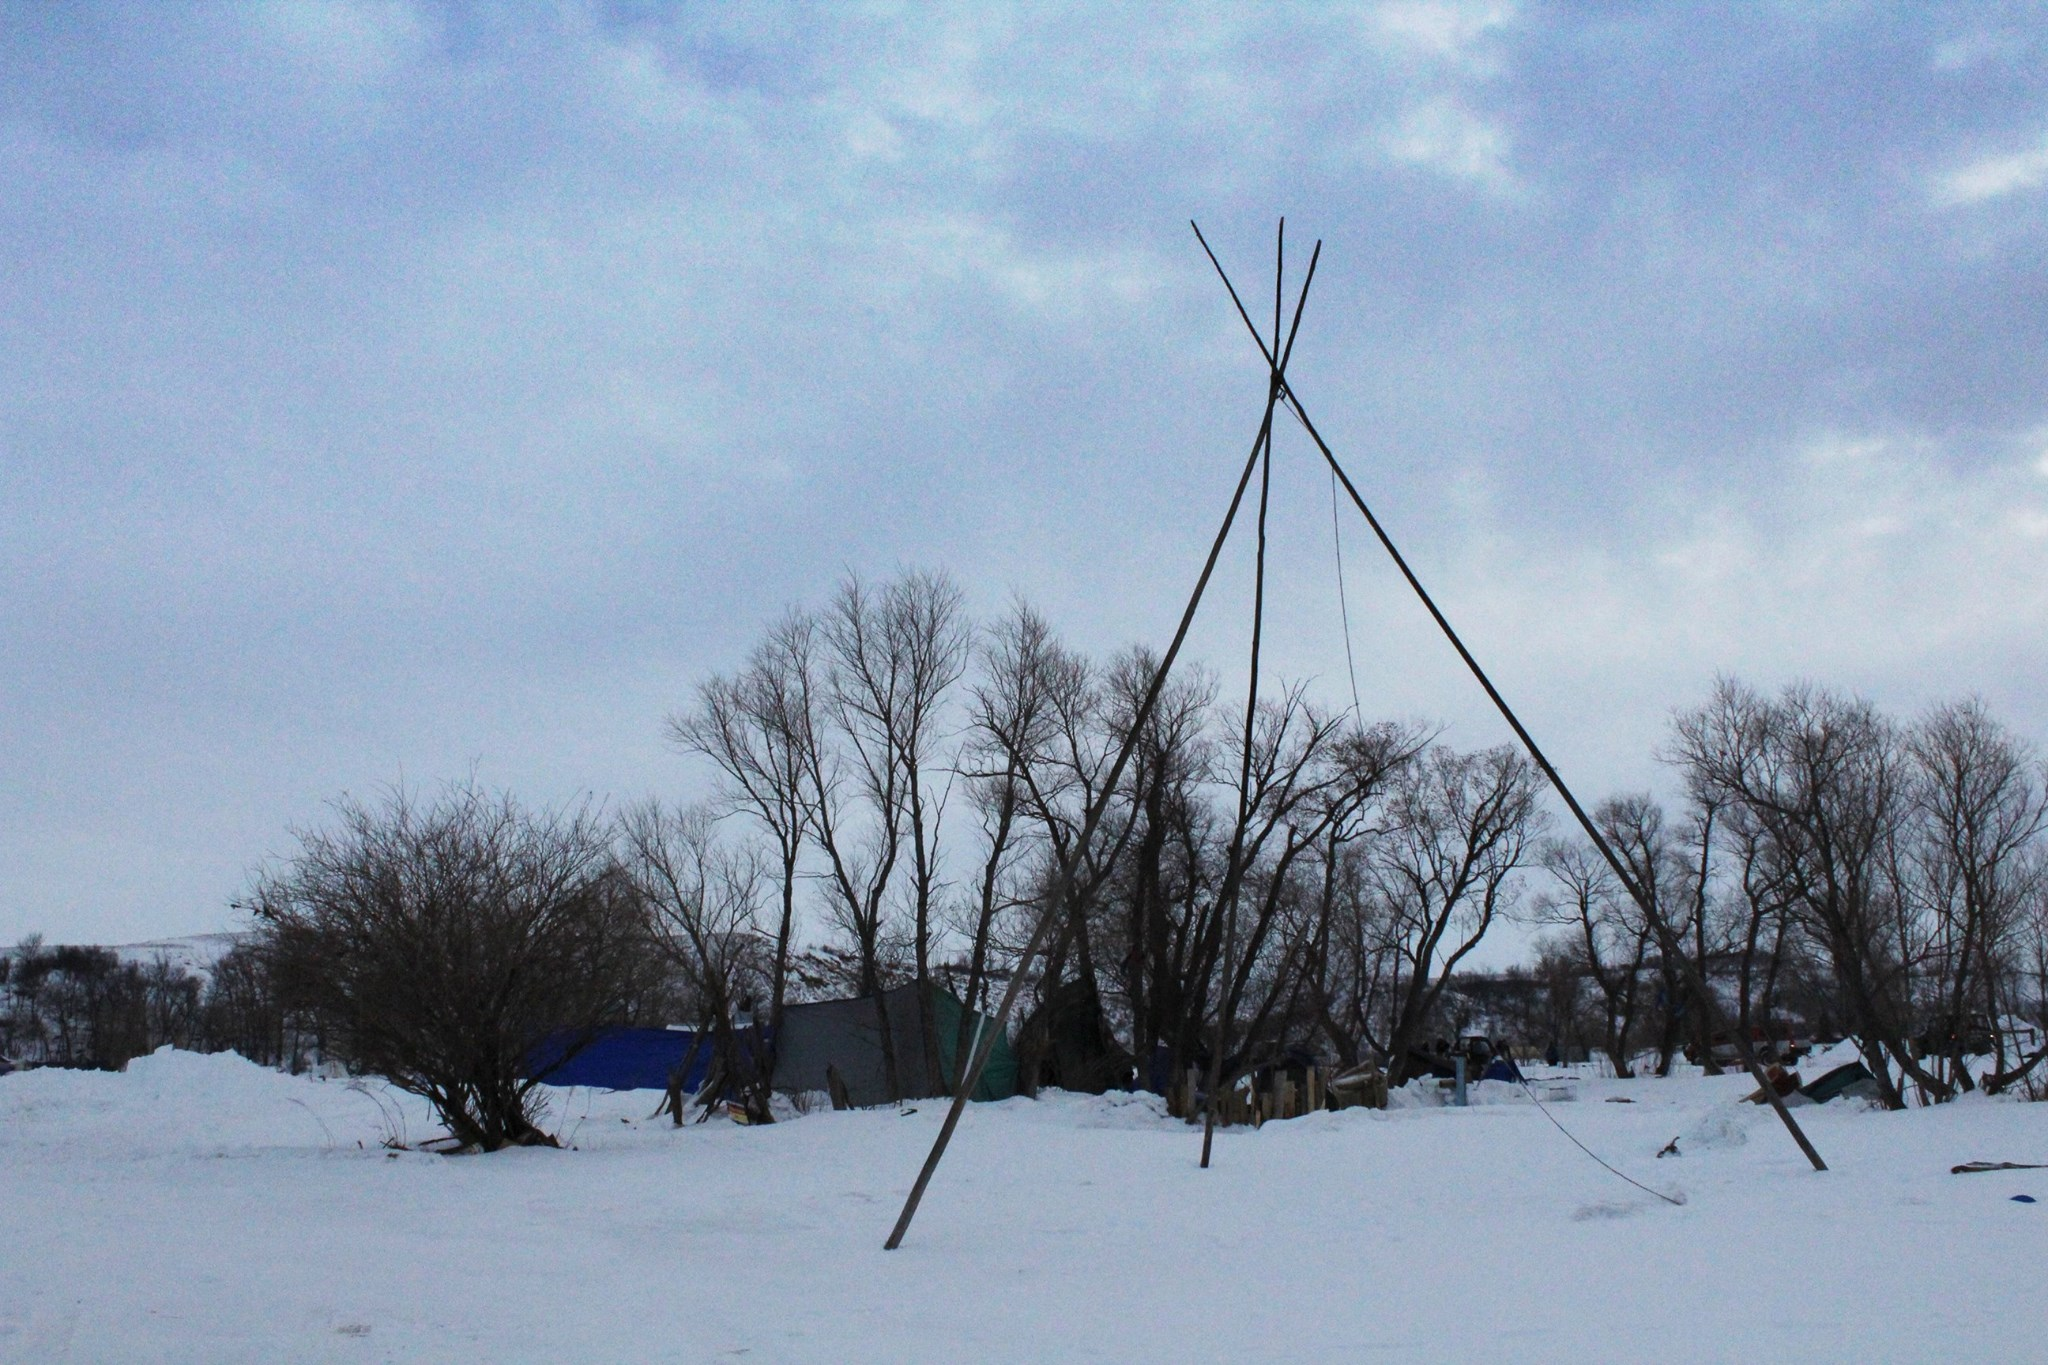 Kyle Powys Whyte: Why the Dakota Access Pipeline fight continues